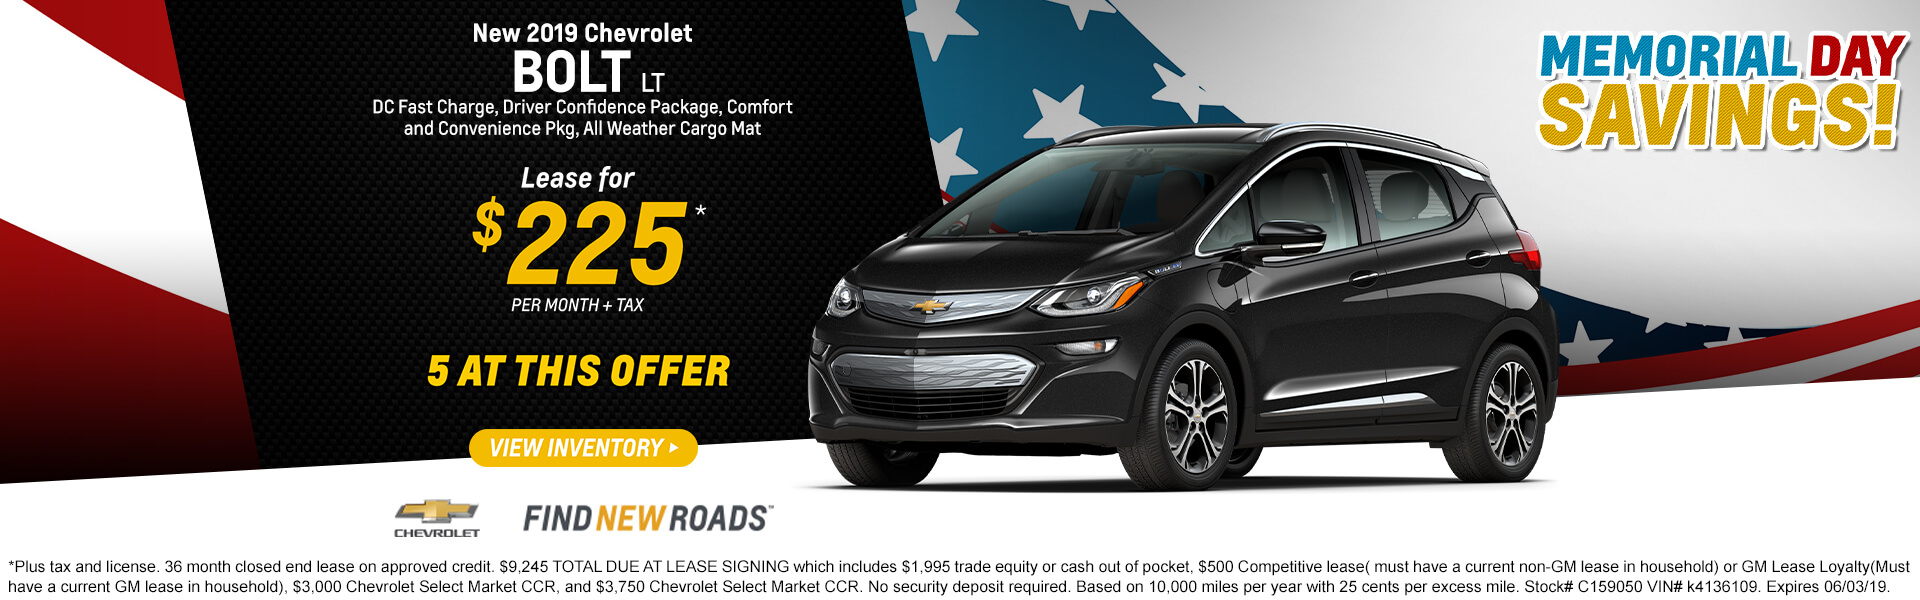 2019 CHEVROLET BOLT LT DC Fast Charge, Driver Confidence Package, Comfort and Convenience Pkg, All Weather Cargo Mat  Lease for $225* + tax per month  5 AT THIS OFFER  *Plus tax and license. 36 month closed end lease on approved credit. $9,245 TOTAL DUE AT LEASE SIGNING which includes $1,995 trade equity or cash out of pocket, $500 Competitive lease( must have a current non-GM lease in household) or GM Lease Loyalty(Must have a current GM lease in household), $3,000 Chevrolet Select Market CCR, and $3,750 Chevrolet Select Market CCR. No security deposit required. Based on 10,000 miles per year with 25 cents per excess mile. Stock# C159050 VIN# k4136109. Expires 06/03/19.